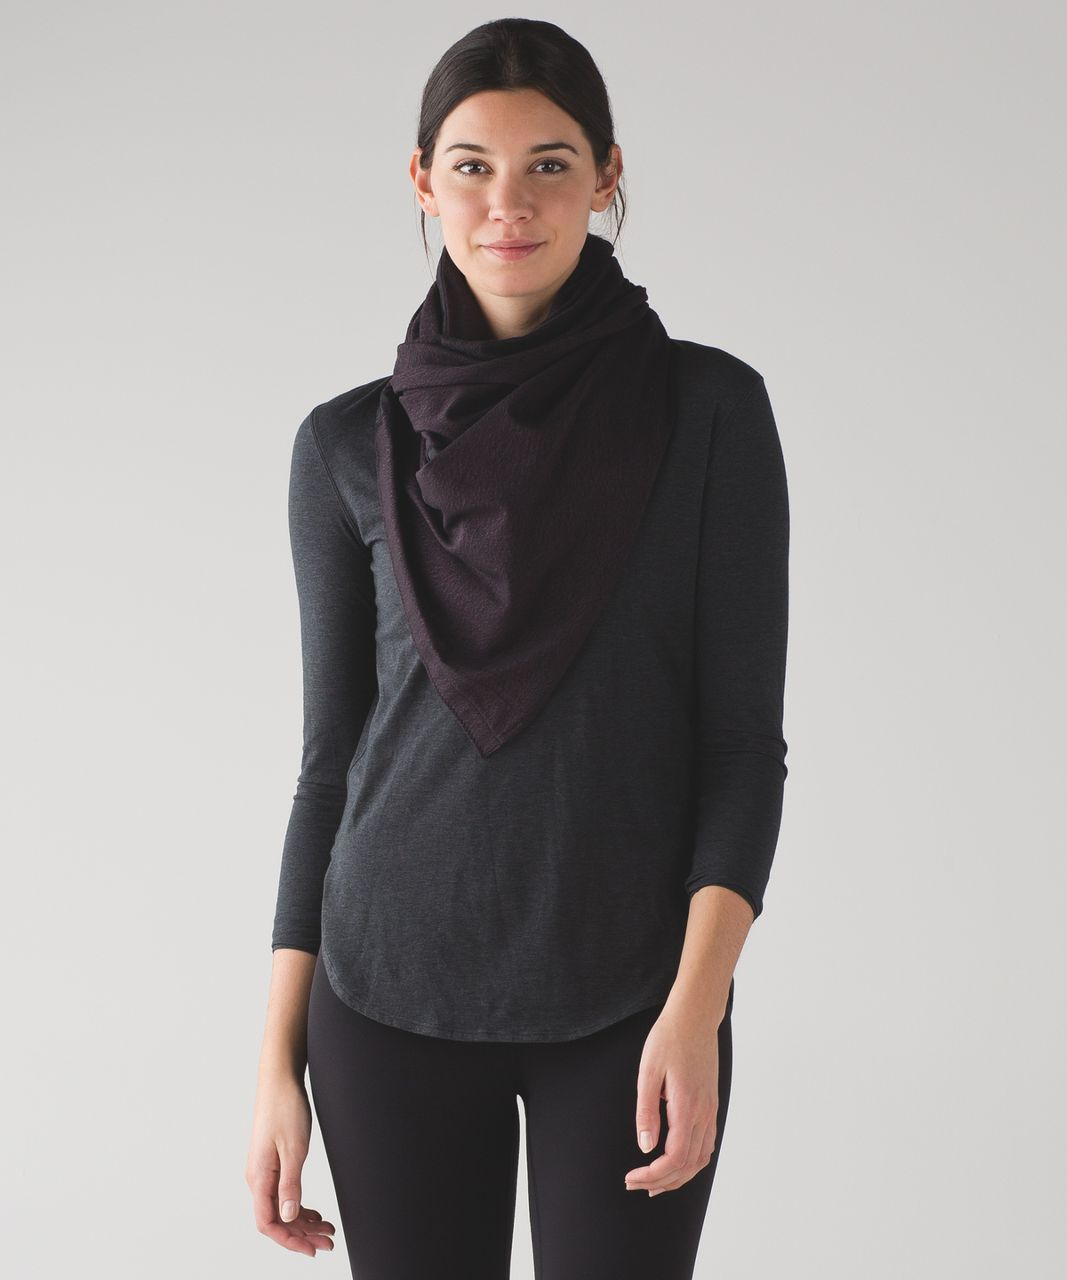 Lululemon Vinyasa Wrap - Running Luon Spray Jacquard Black Cherry Black / Black